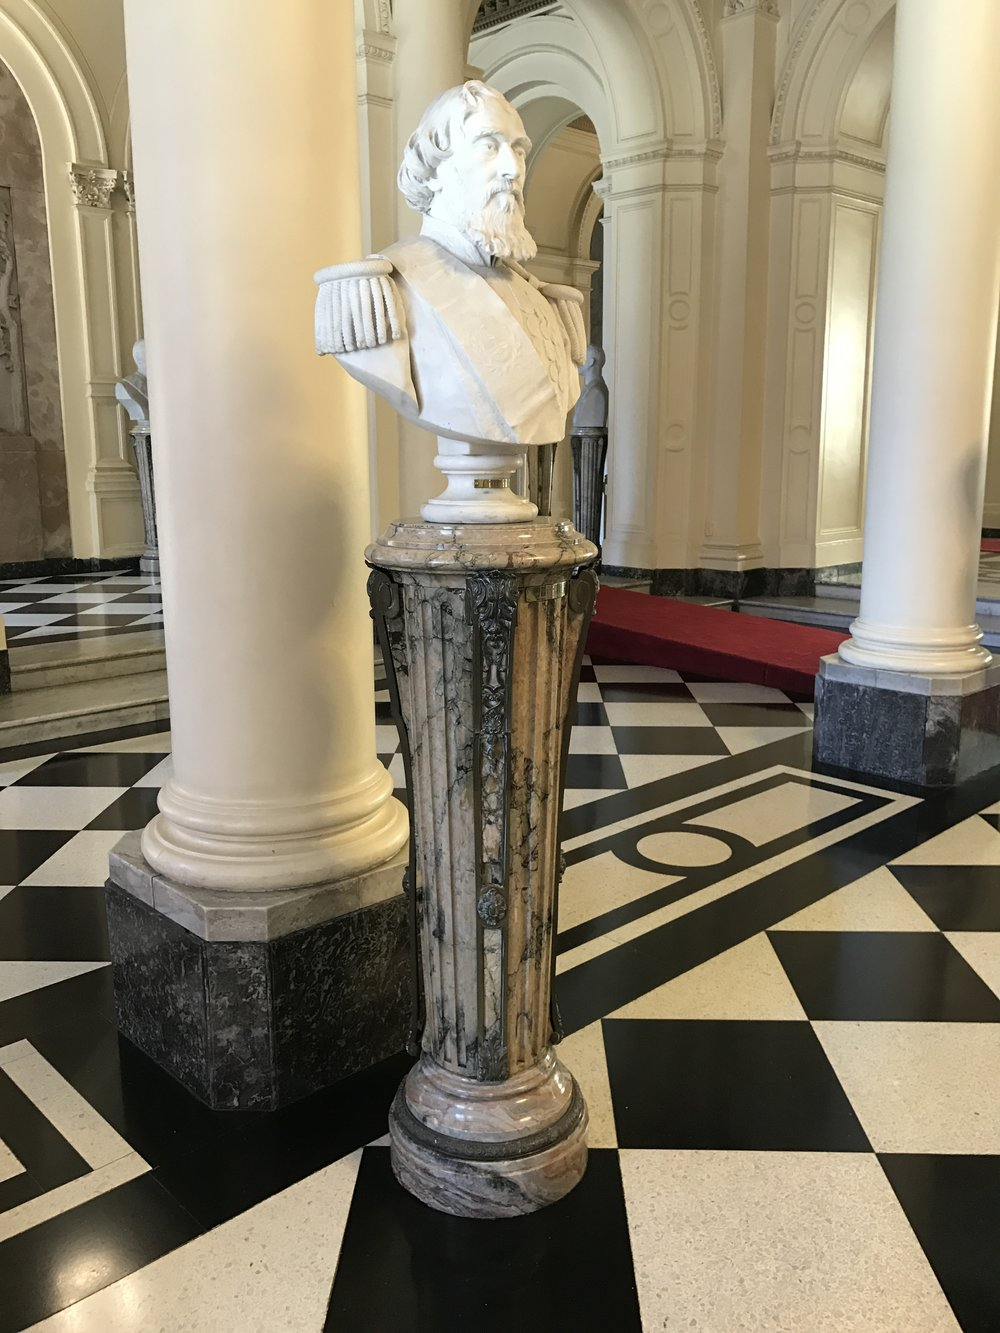 Bust of a former president. In this hall there is a similar bust for every president.